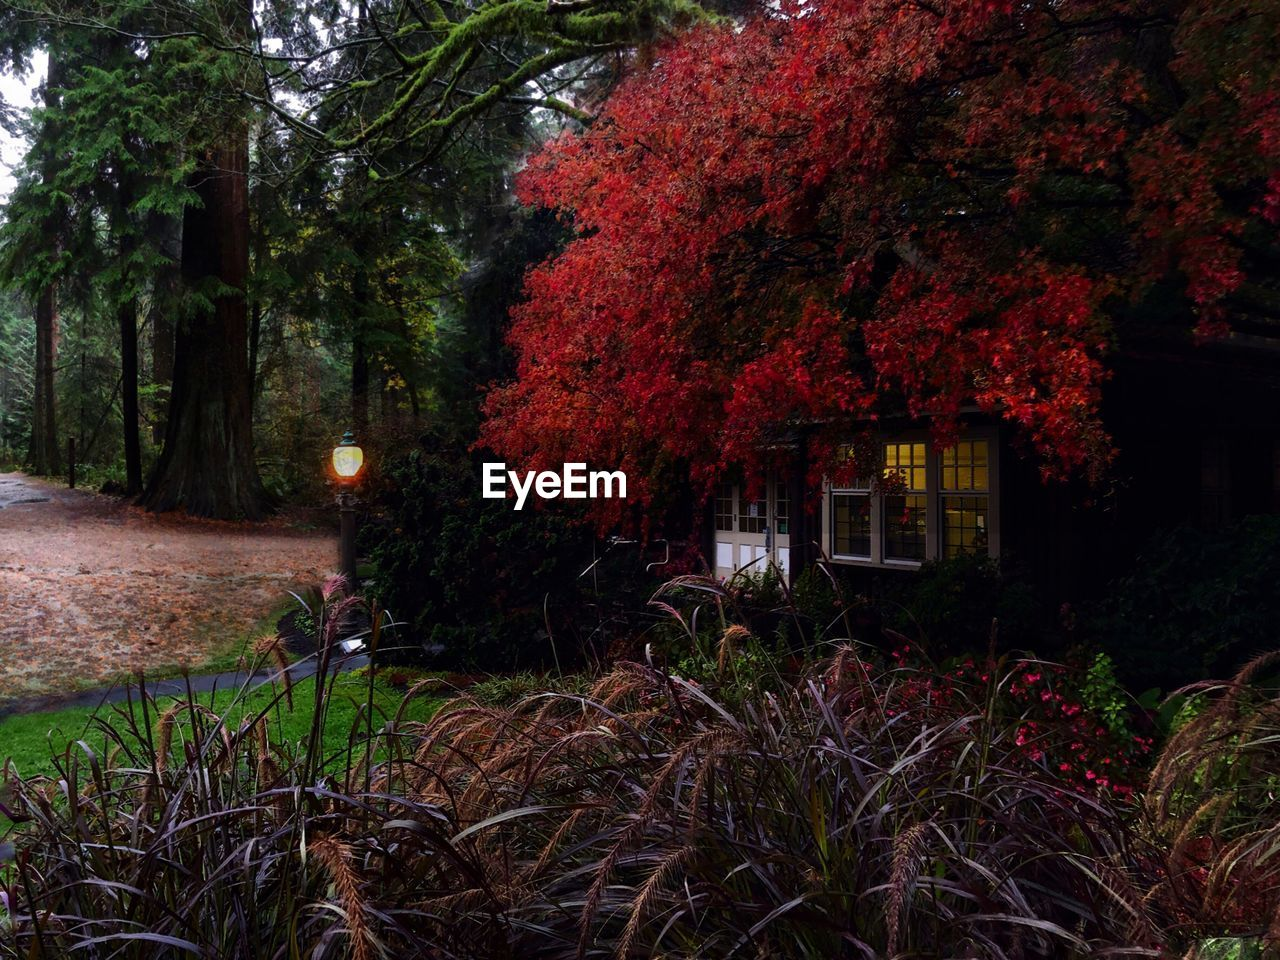 TREES AND RED PLANTS IN YARD DURING AUTUMN